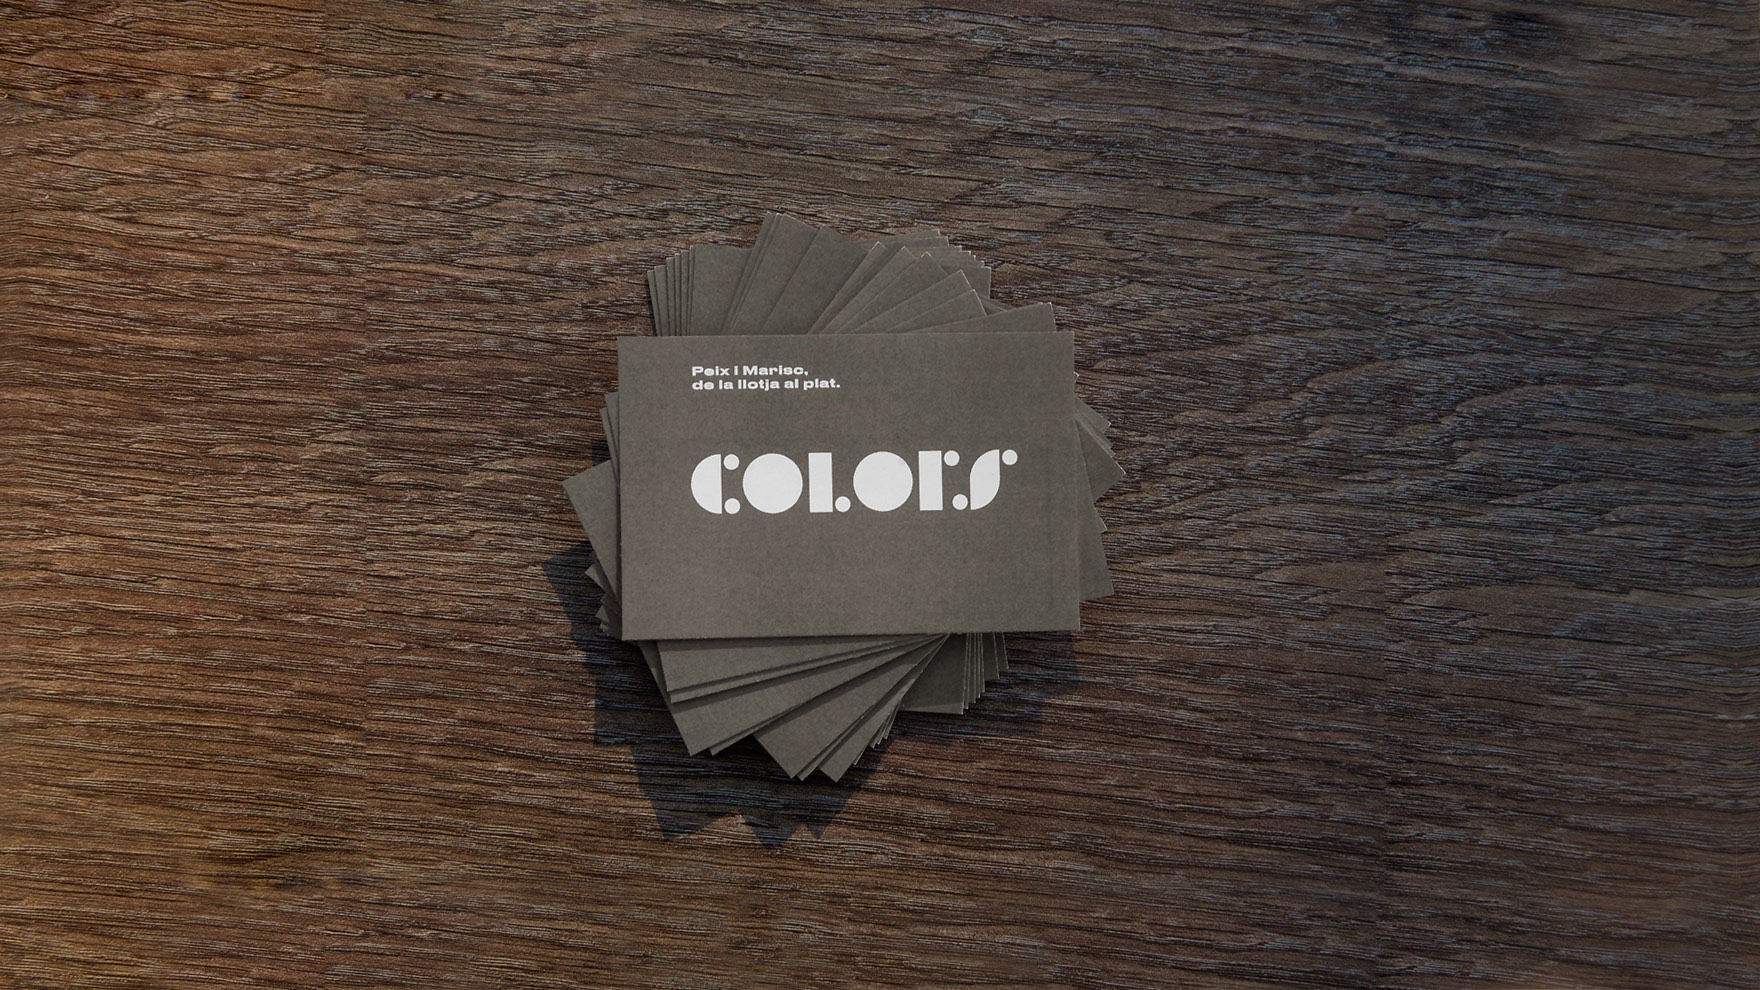 COLORS / IDENTIDAD CORPORATIVA / BRANDING